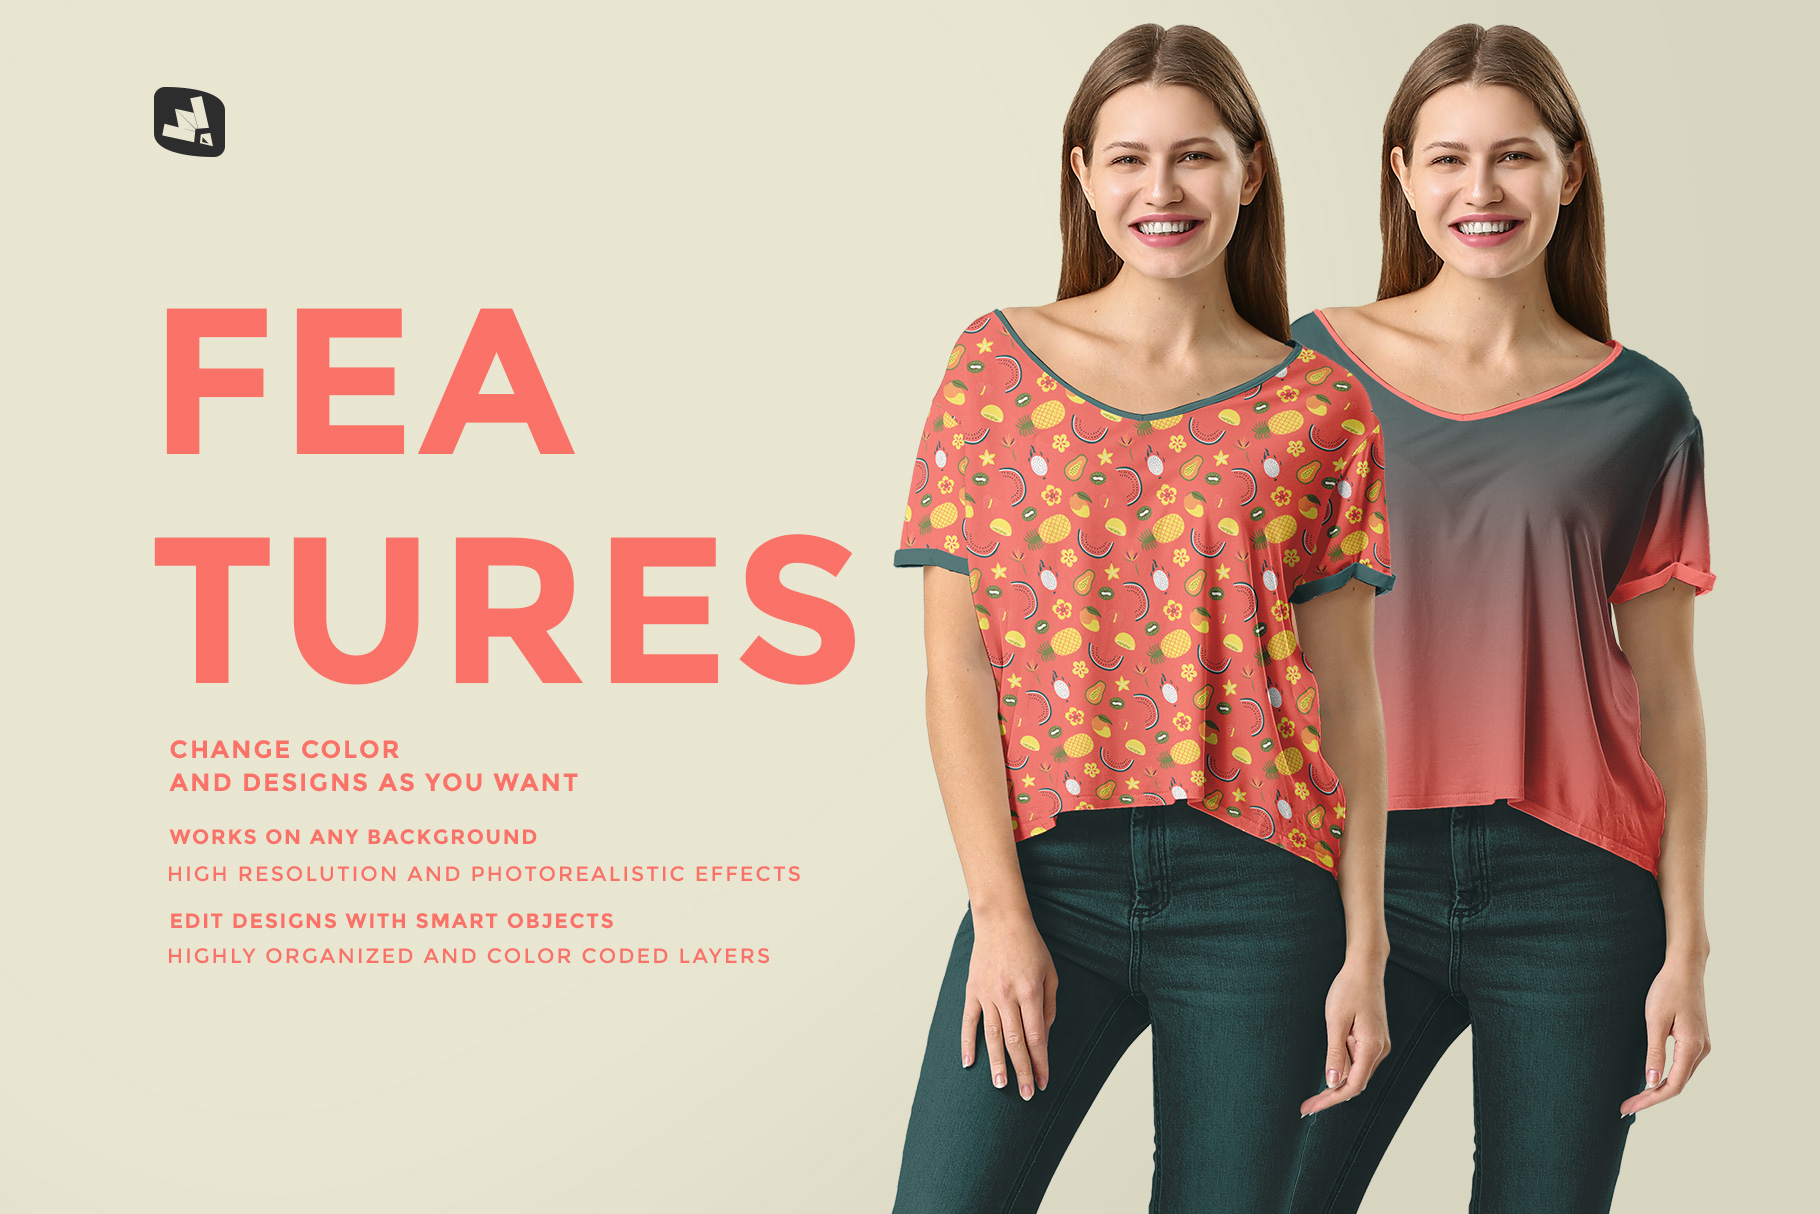 features of the female everyday outfit mockup